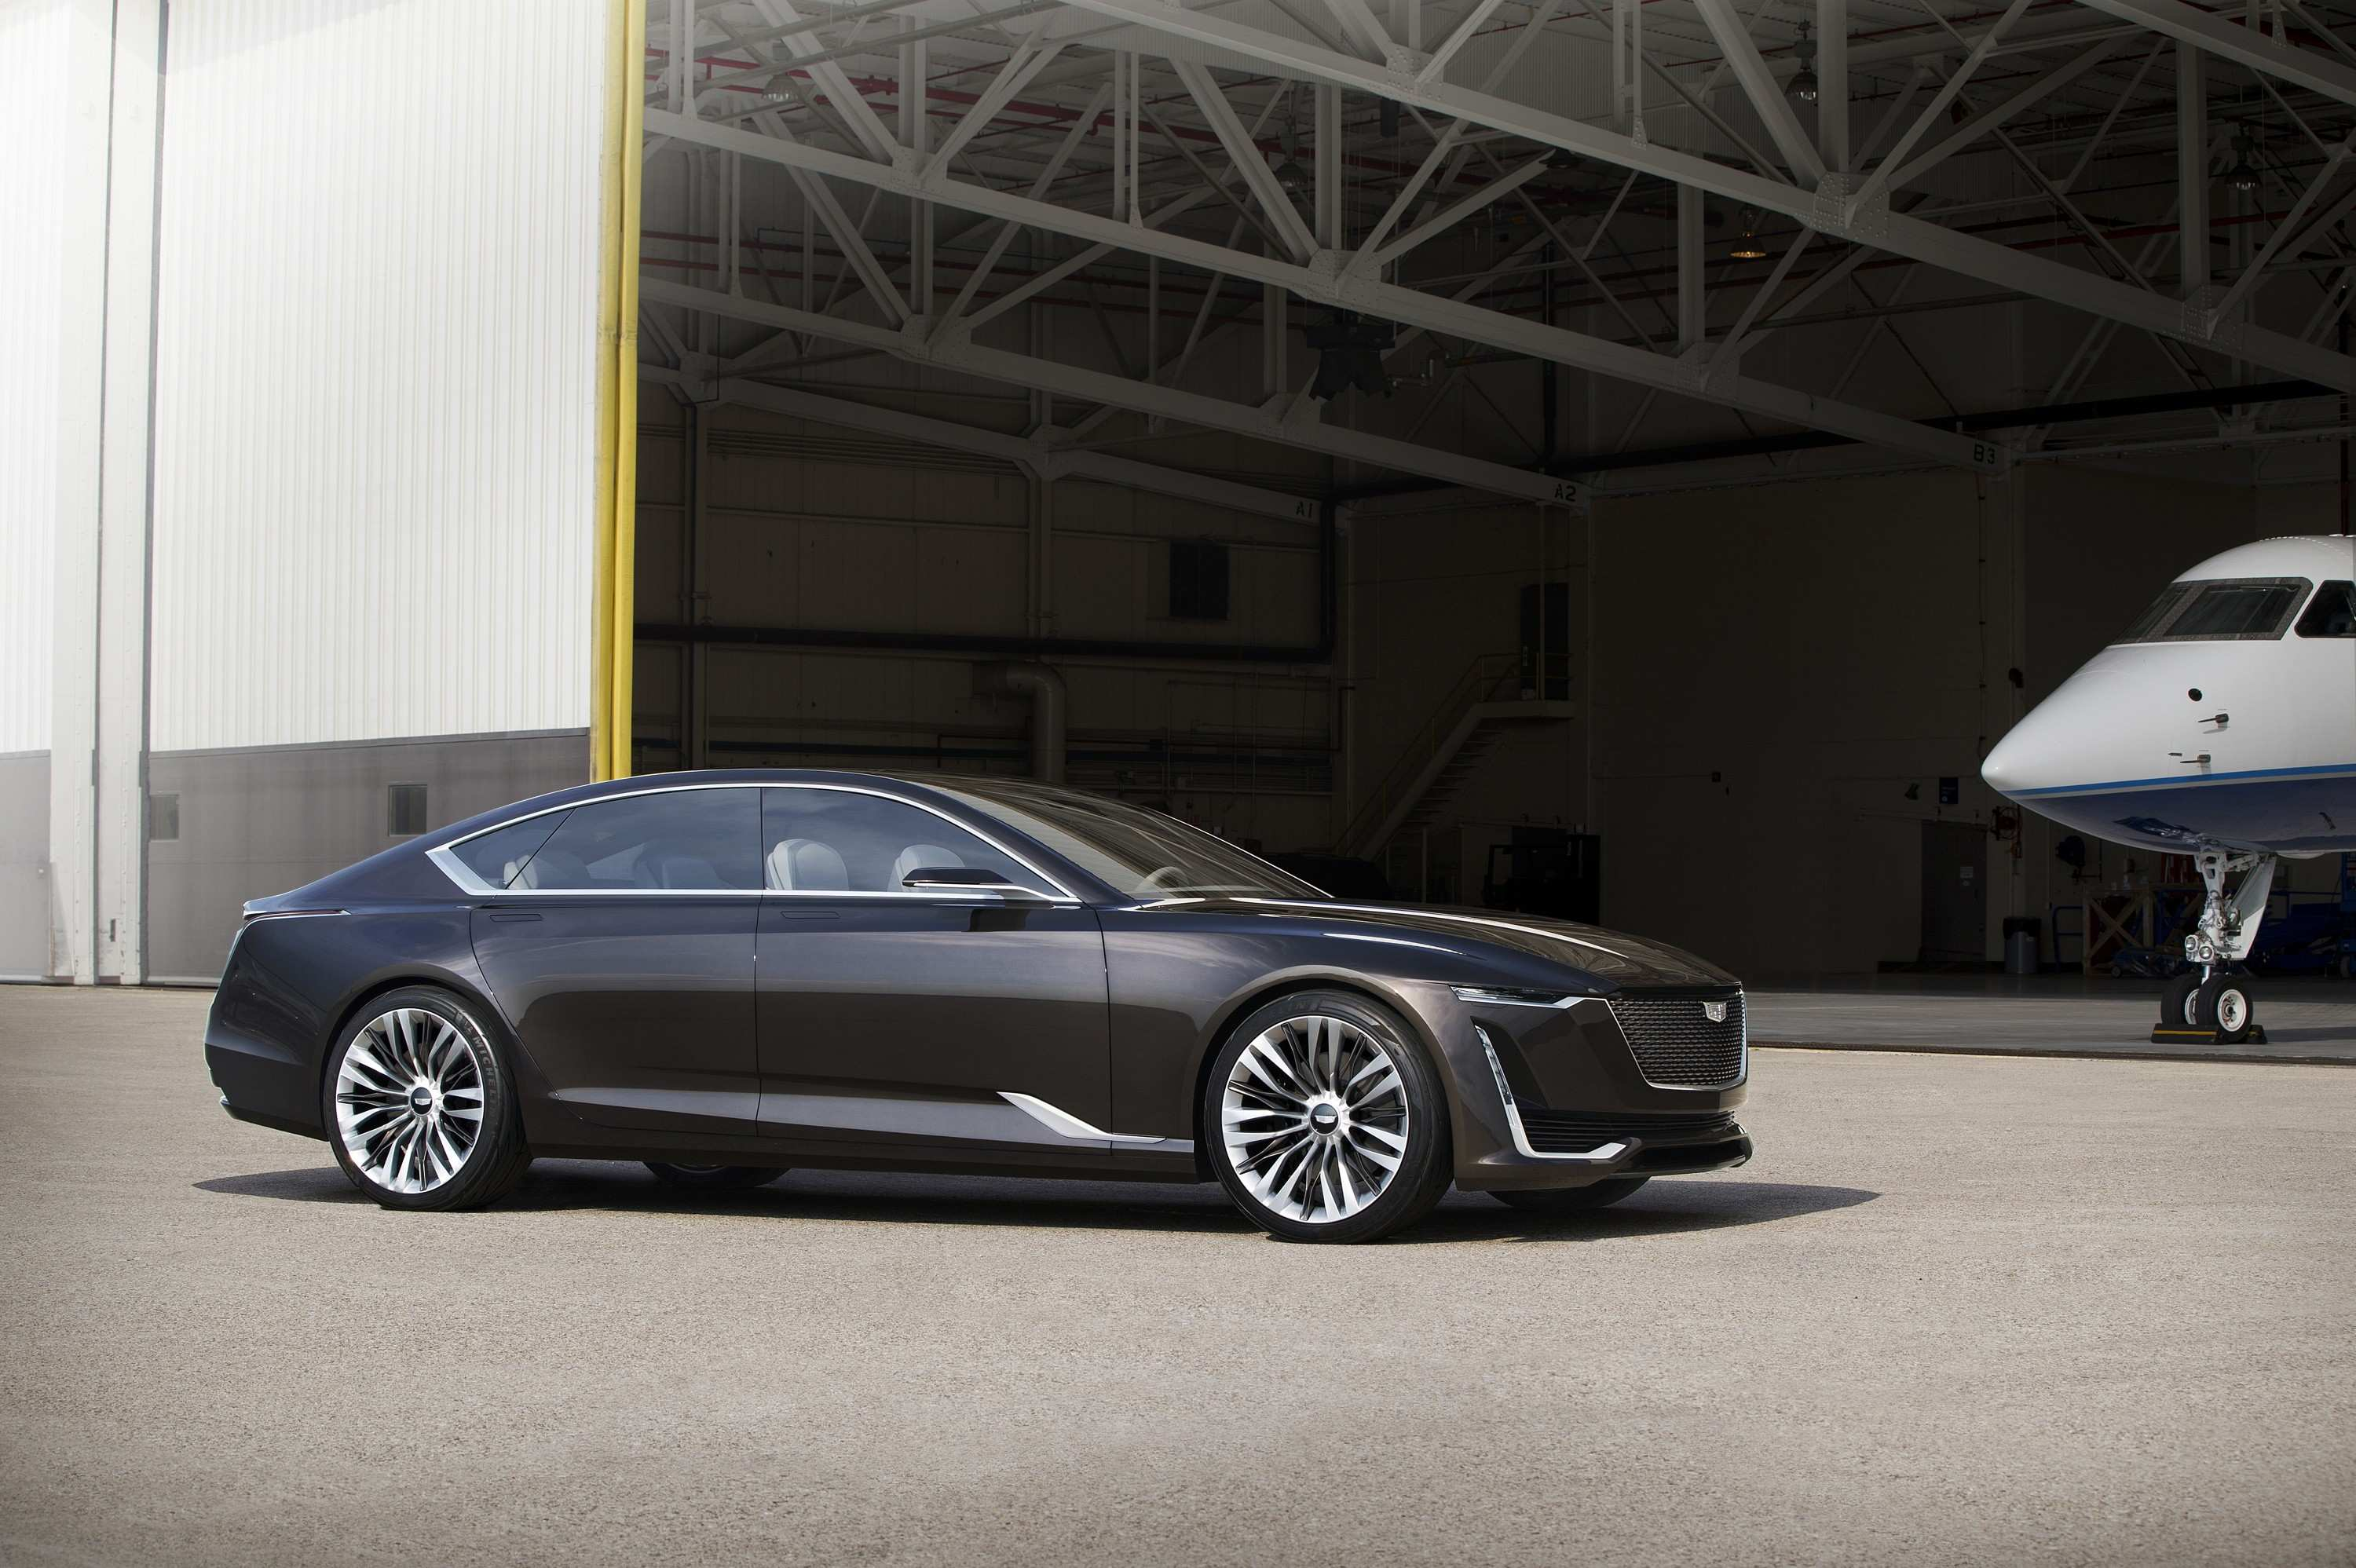 41 All New Cadillac Ats 2020 Review And Release Date